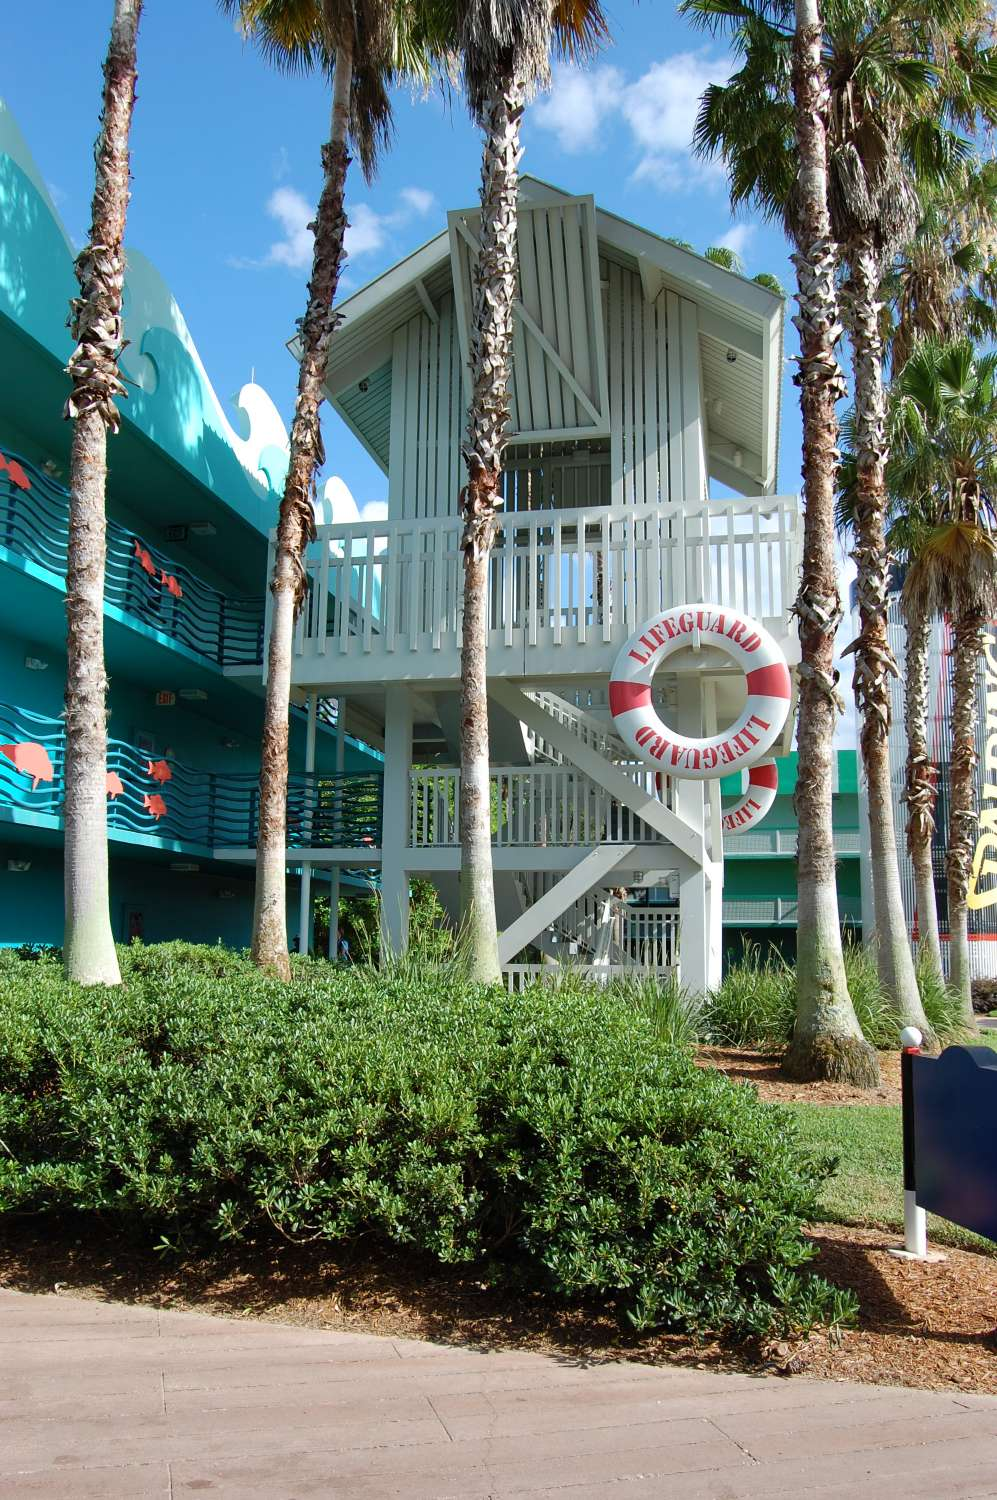 331-All-Star-Sports-Surfs-Up-Buildings-Stairs.JPG